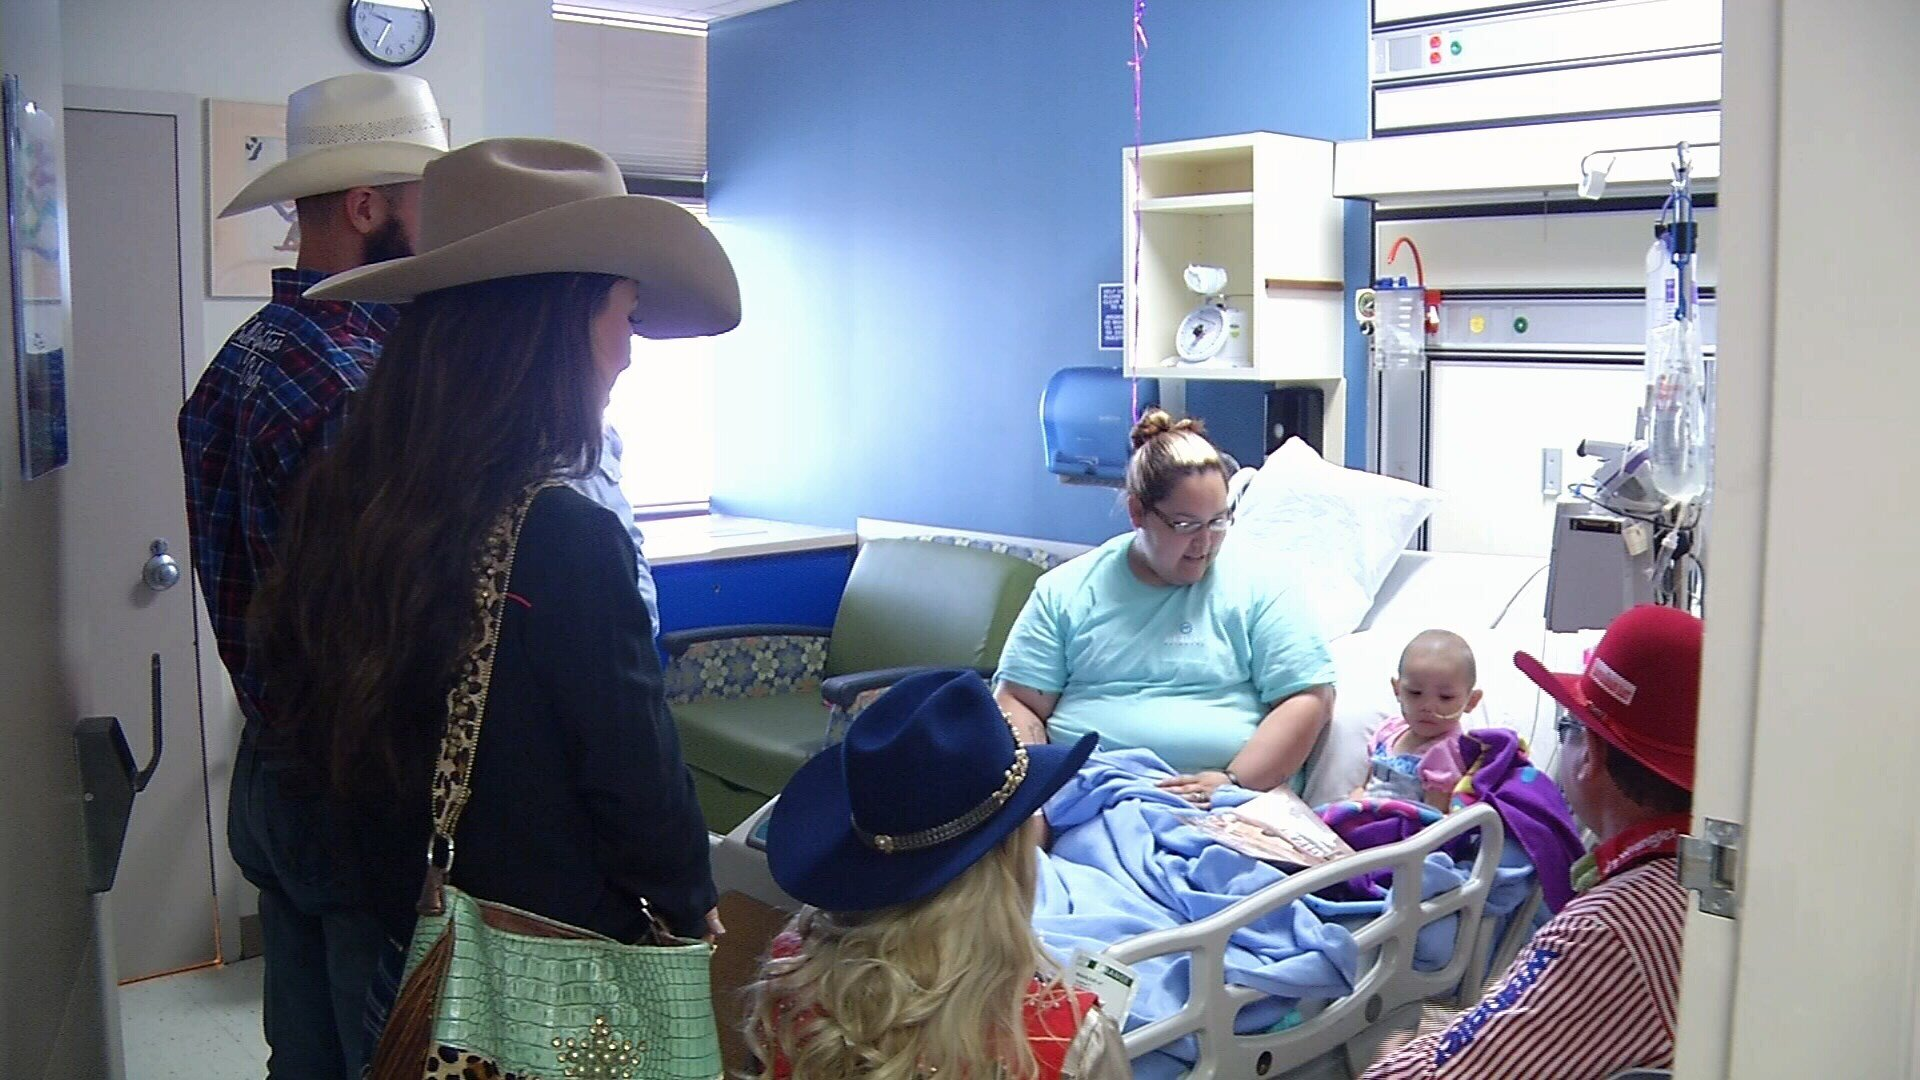 The bullfighters, rodeo queens and clown taking part in the Buc Days Rodeo visited with patients at Driscoll Children's Hospital Friday morning.